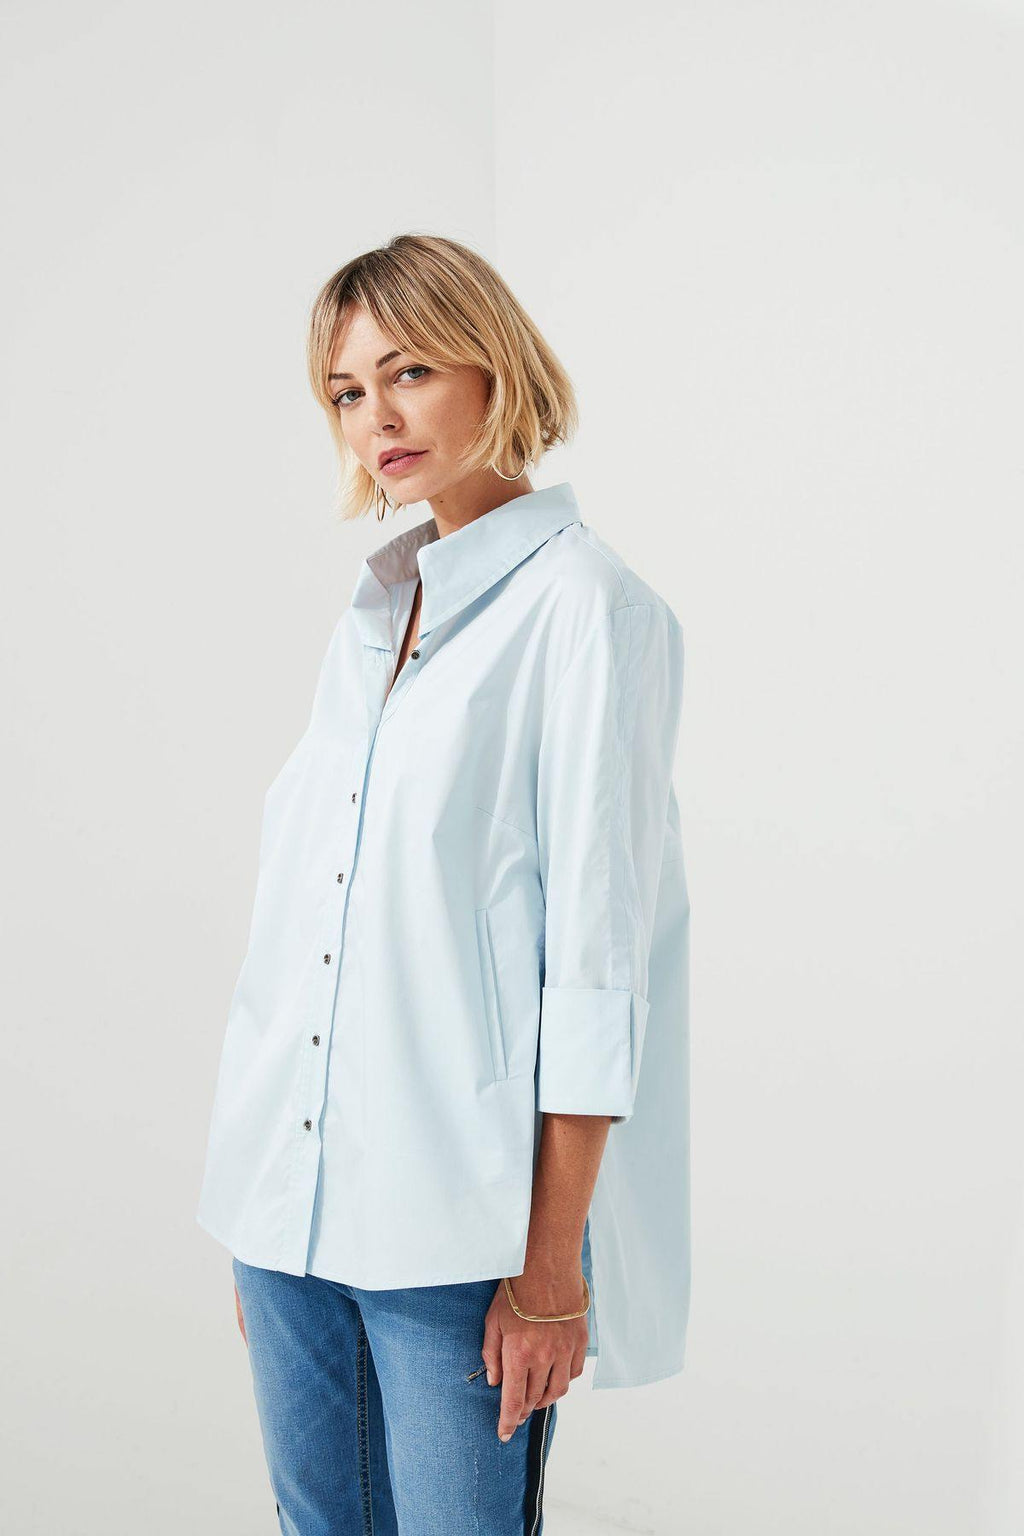 Lania The Label Navigate Shirt in Sky Blue